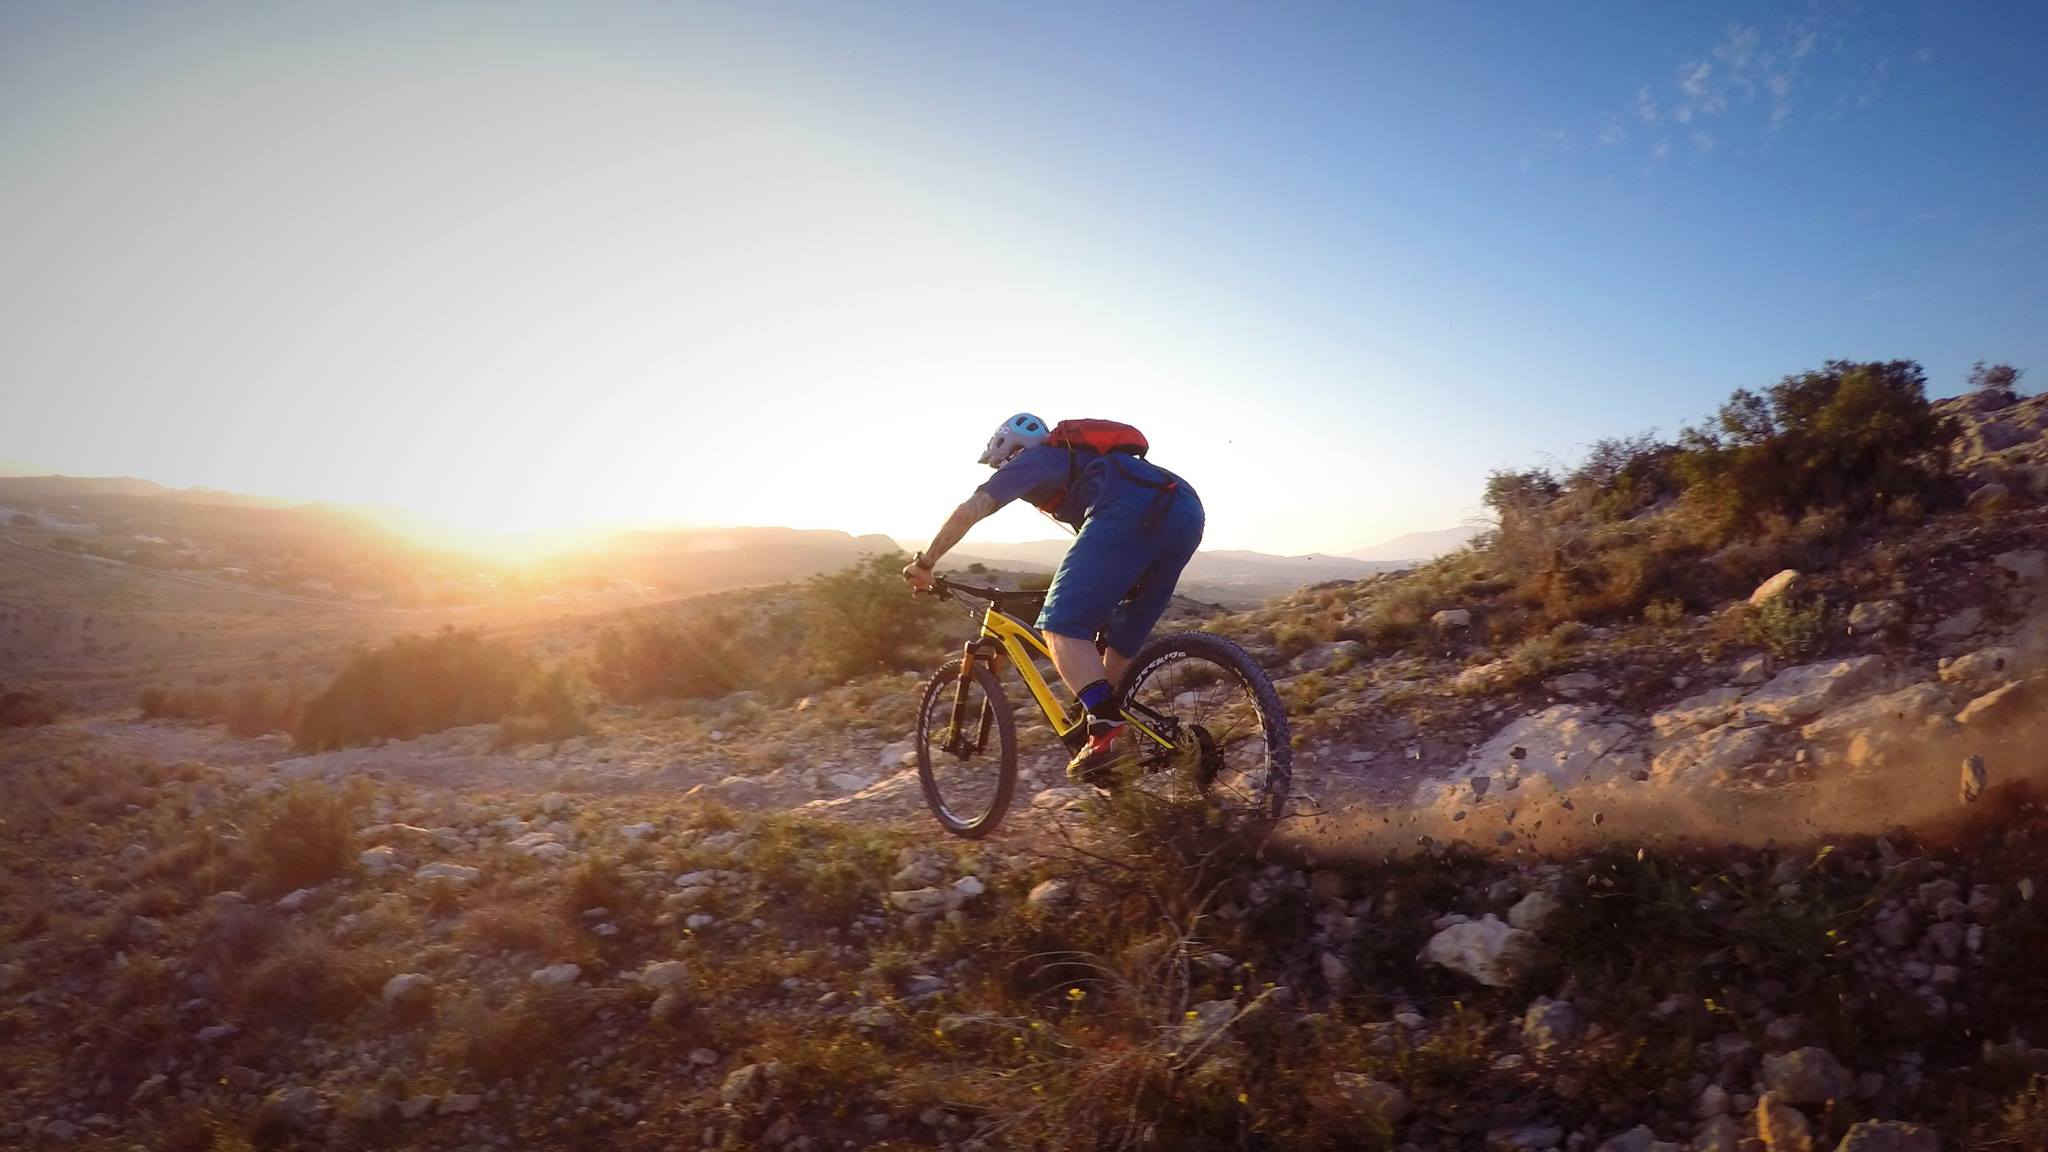 A strong advantage of MTB is a more upright sitting position. Arms are an inseparable part of the posture, and the upper body muscles are more engaged. Because the sitting position is more upright, the cervical spine isn't overstrained that much.